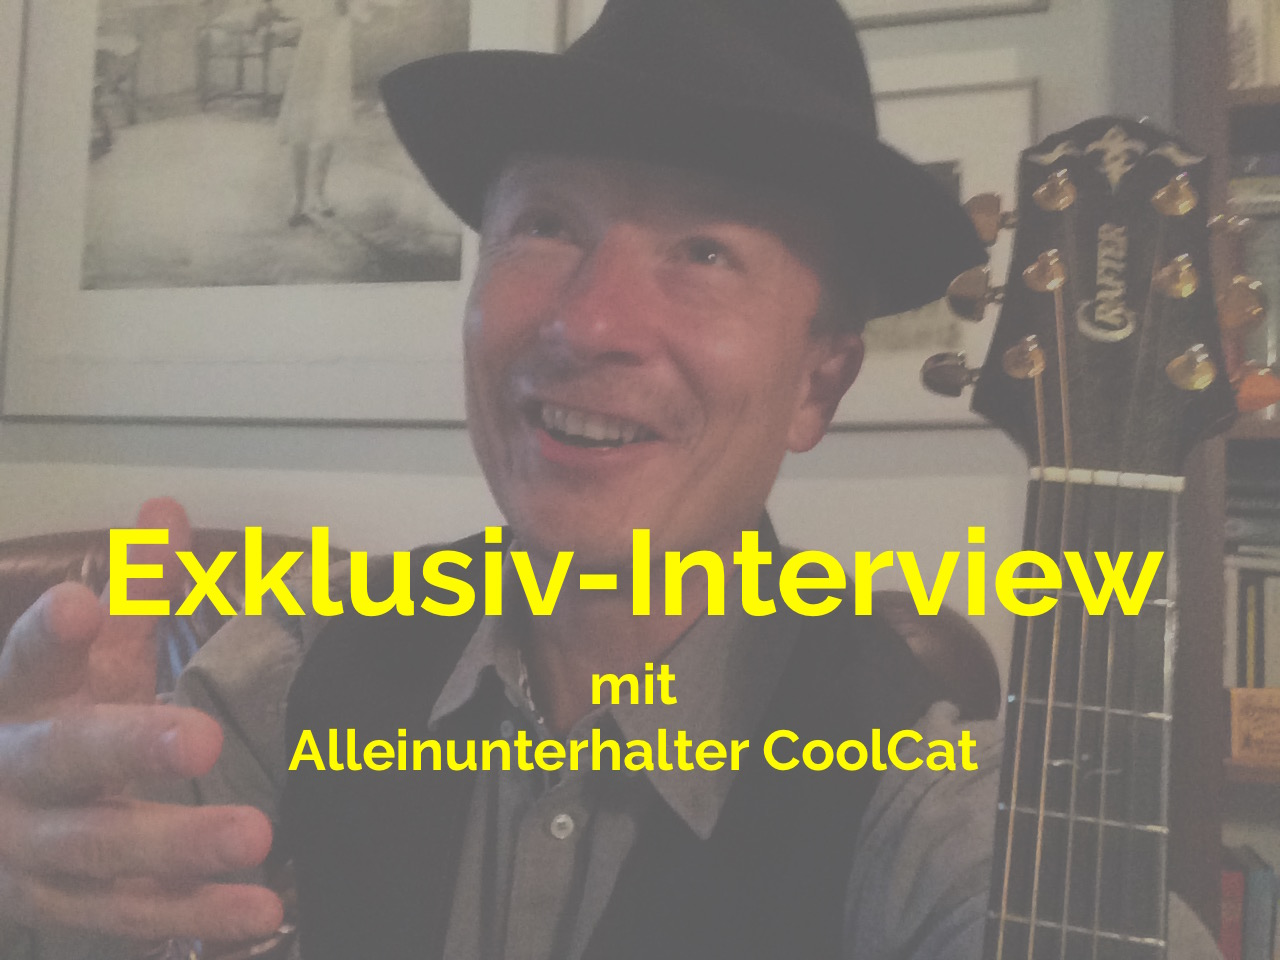 Alleinunterhalter CoolCat gibt Interview